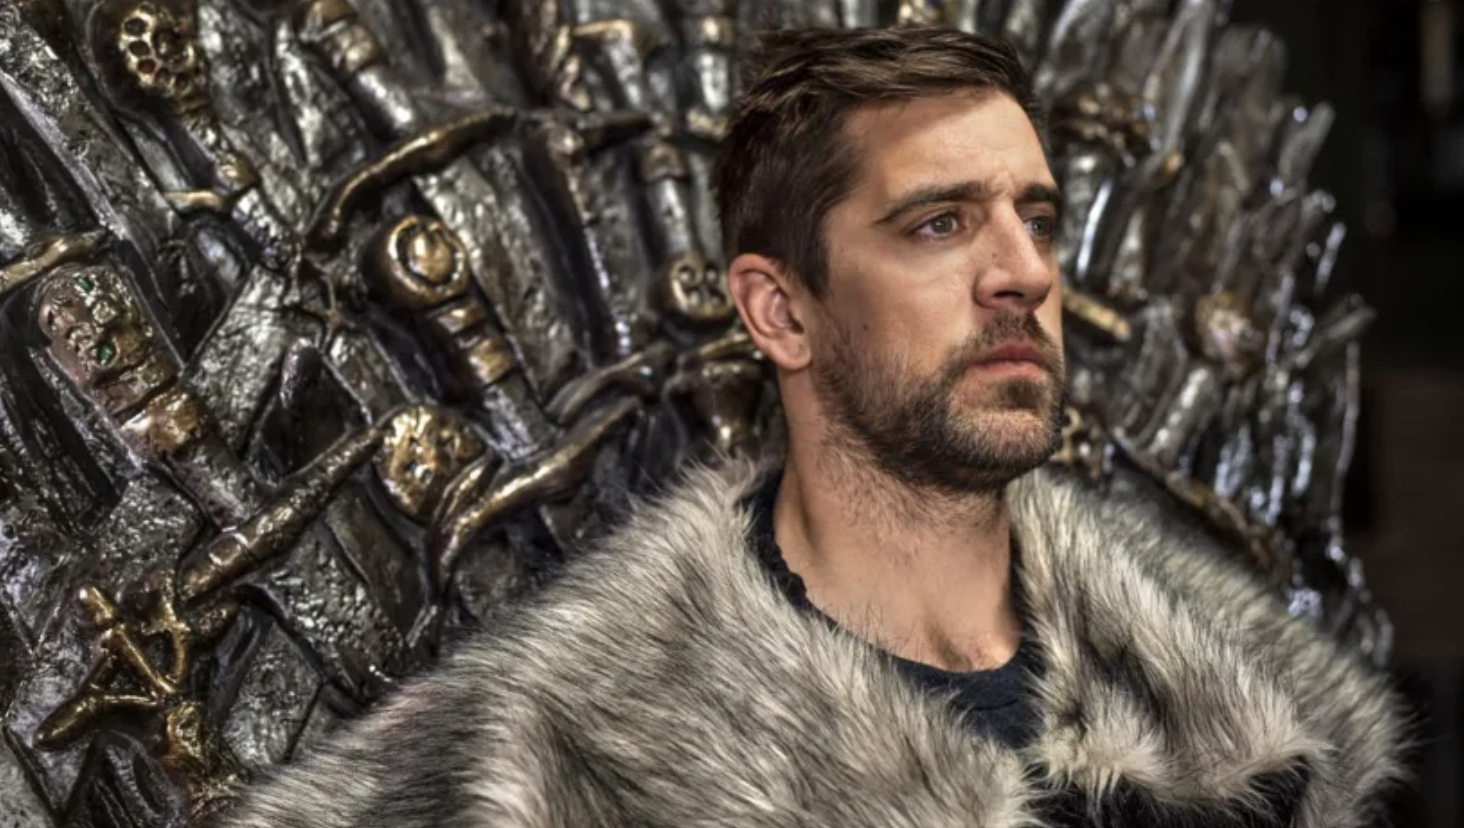 Aaron Rodgers in GOT attire